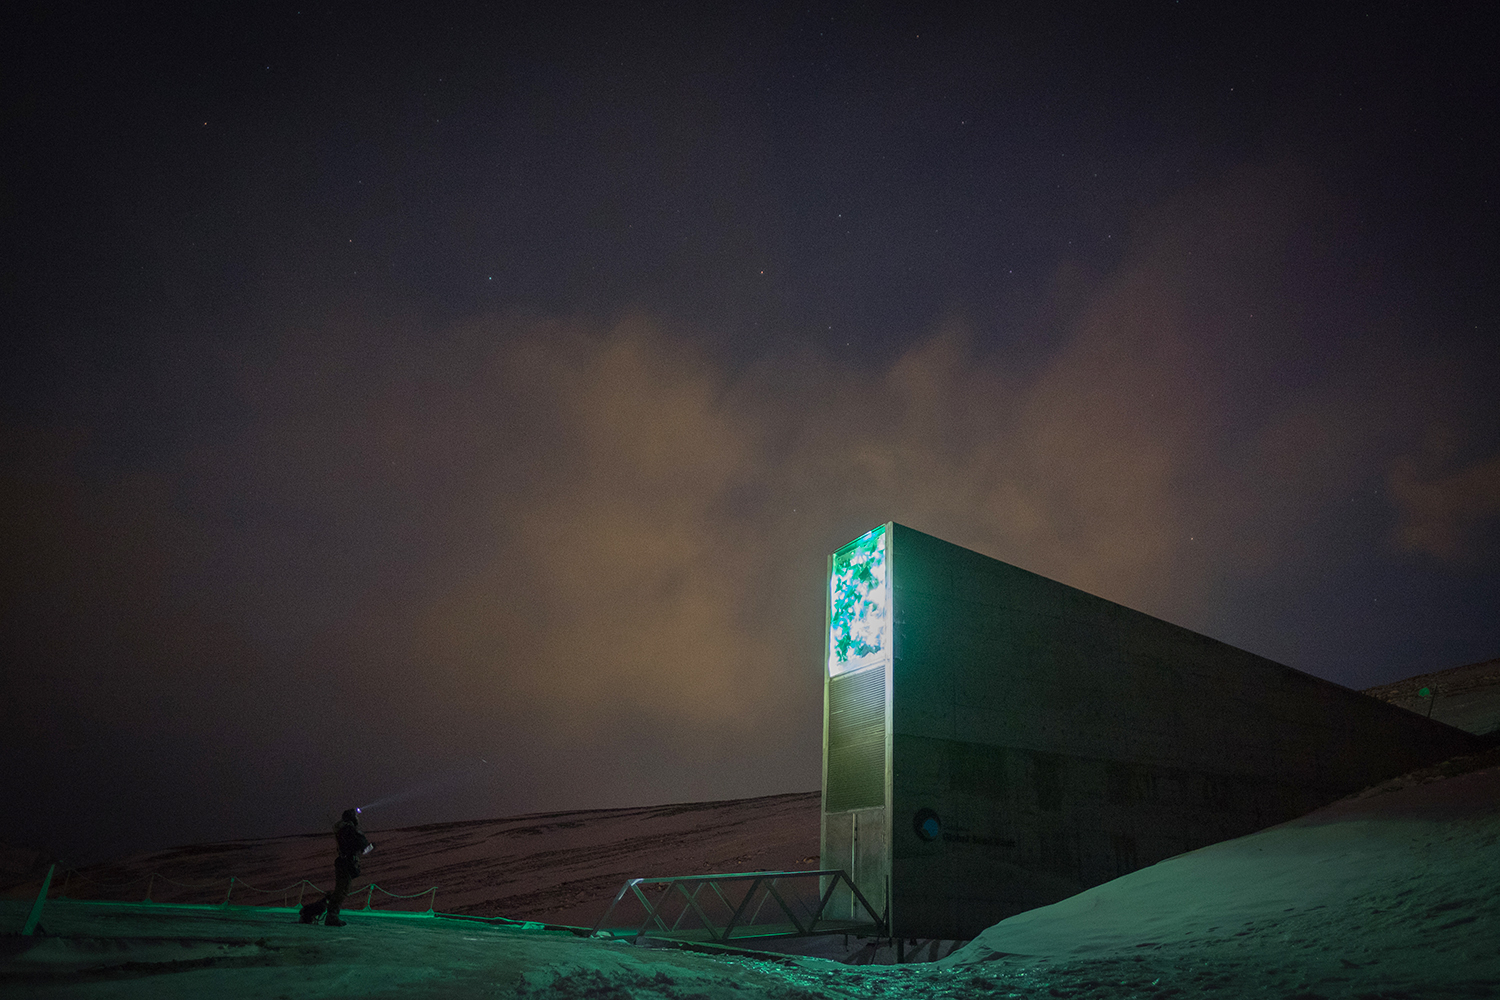 Svalbard's Global Seed Vault: Insurance for Humanity's Future